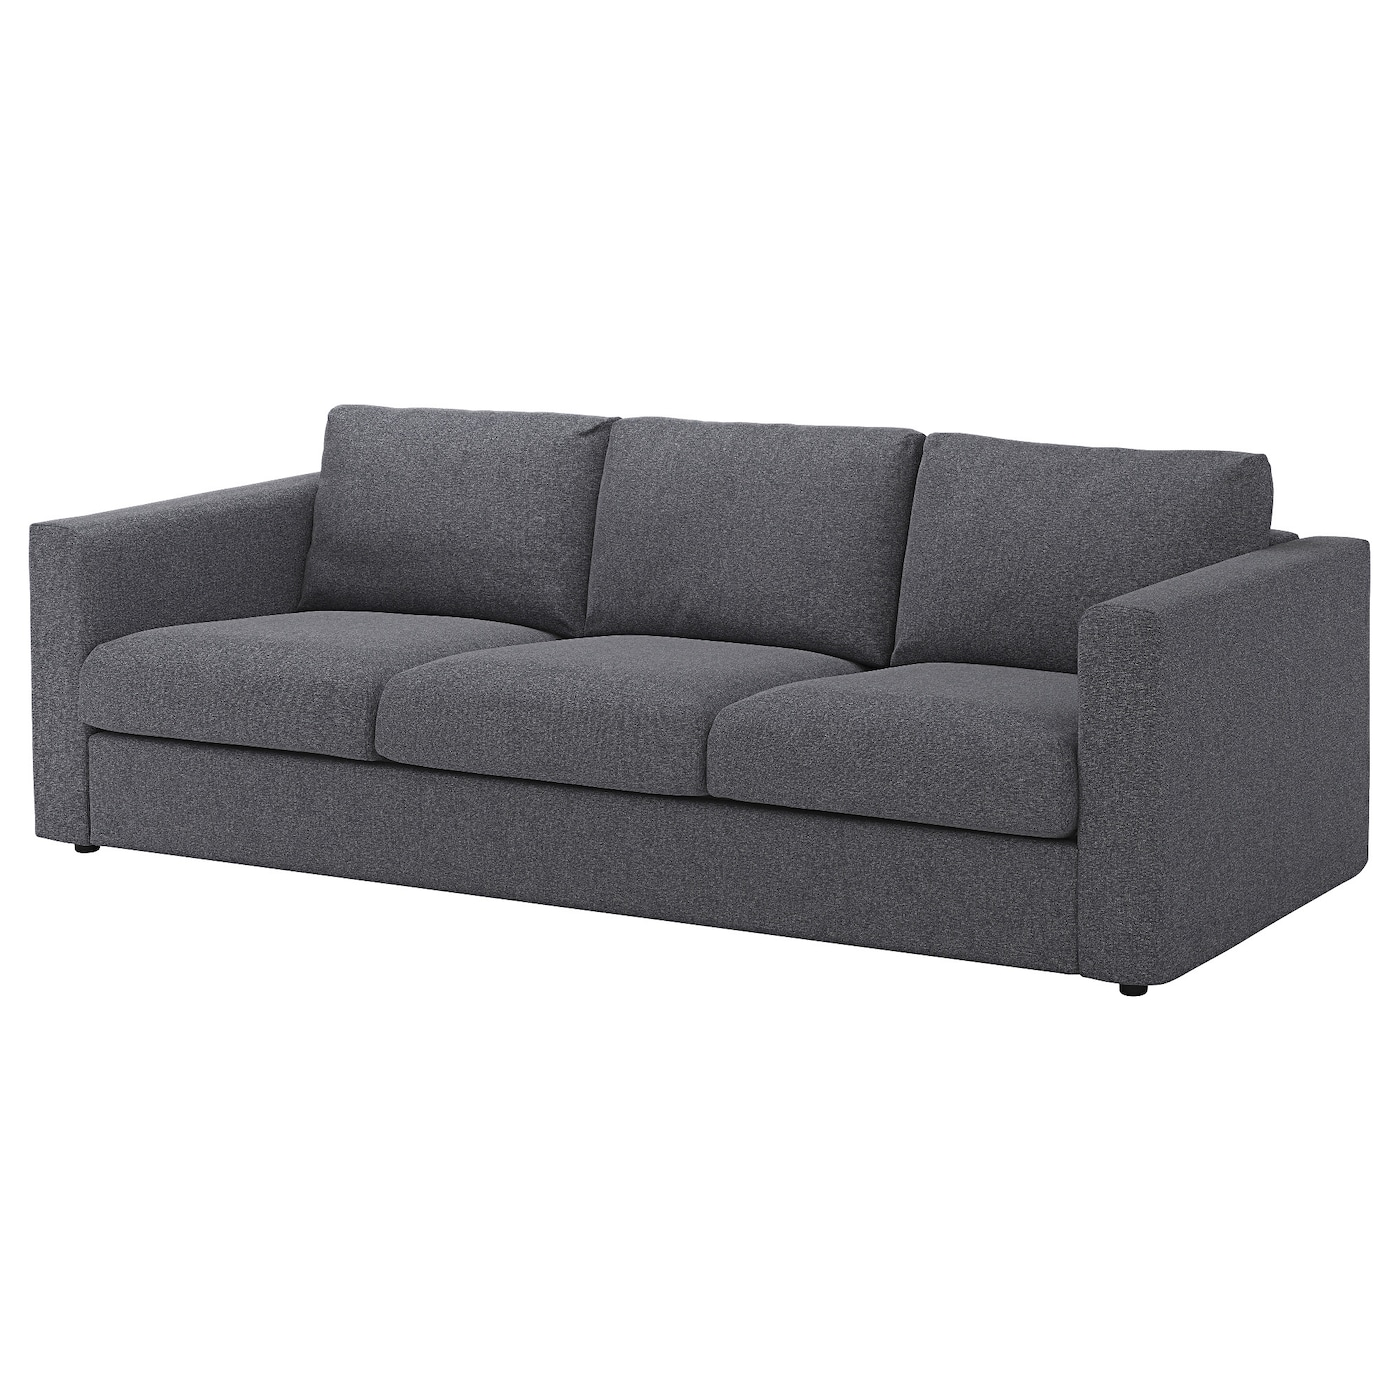 Vimle 3 seat sofa gunnared medium grey ikea for Canape vimle ikea